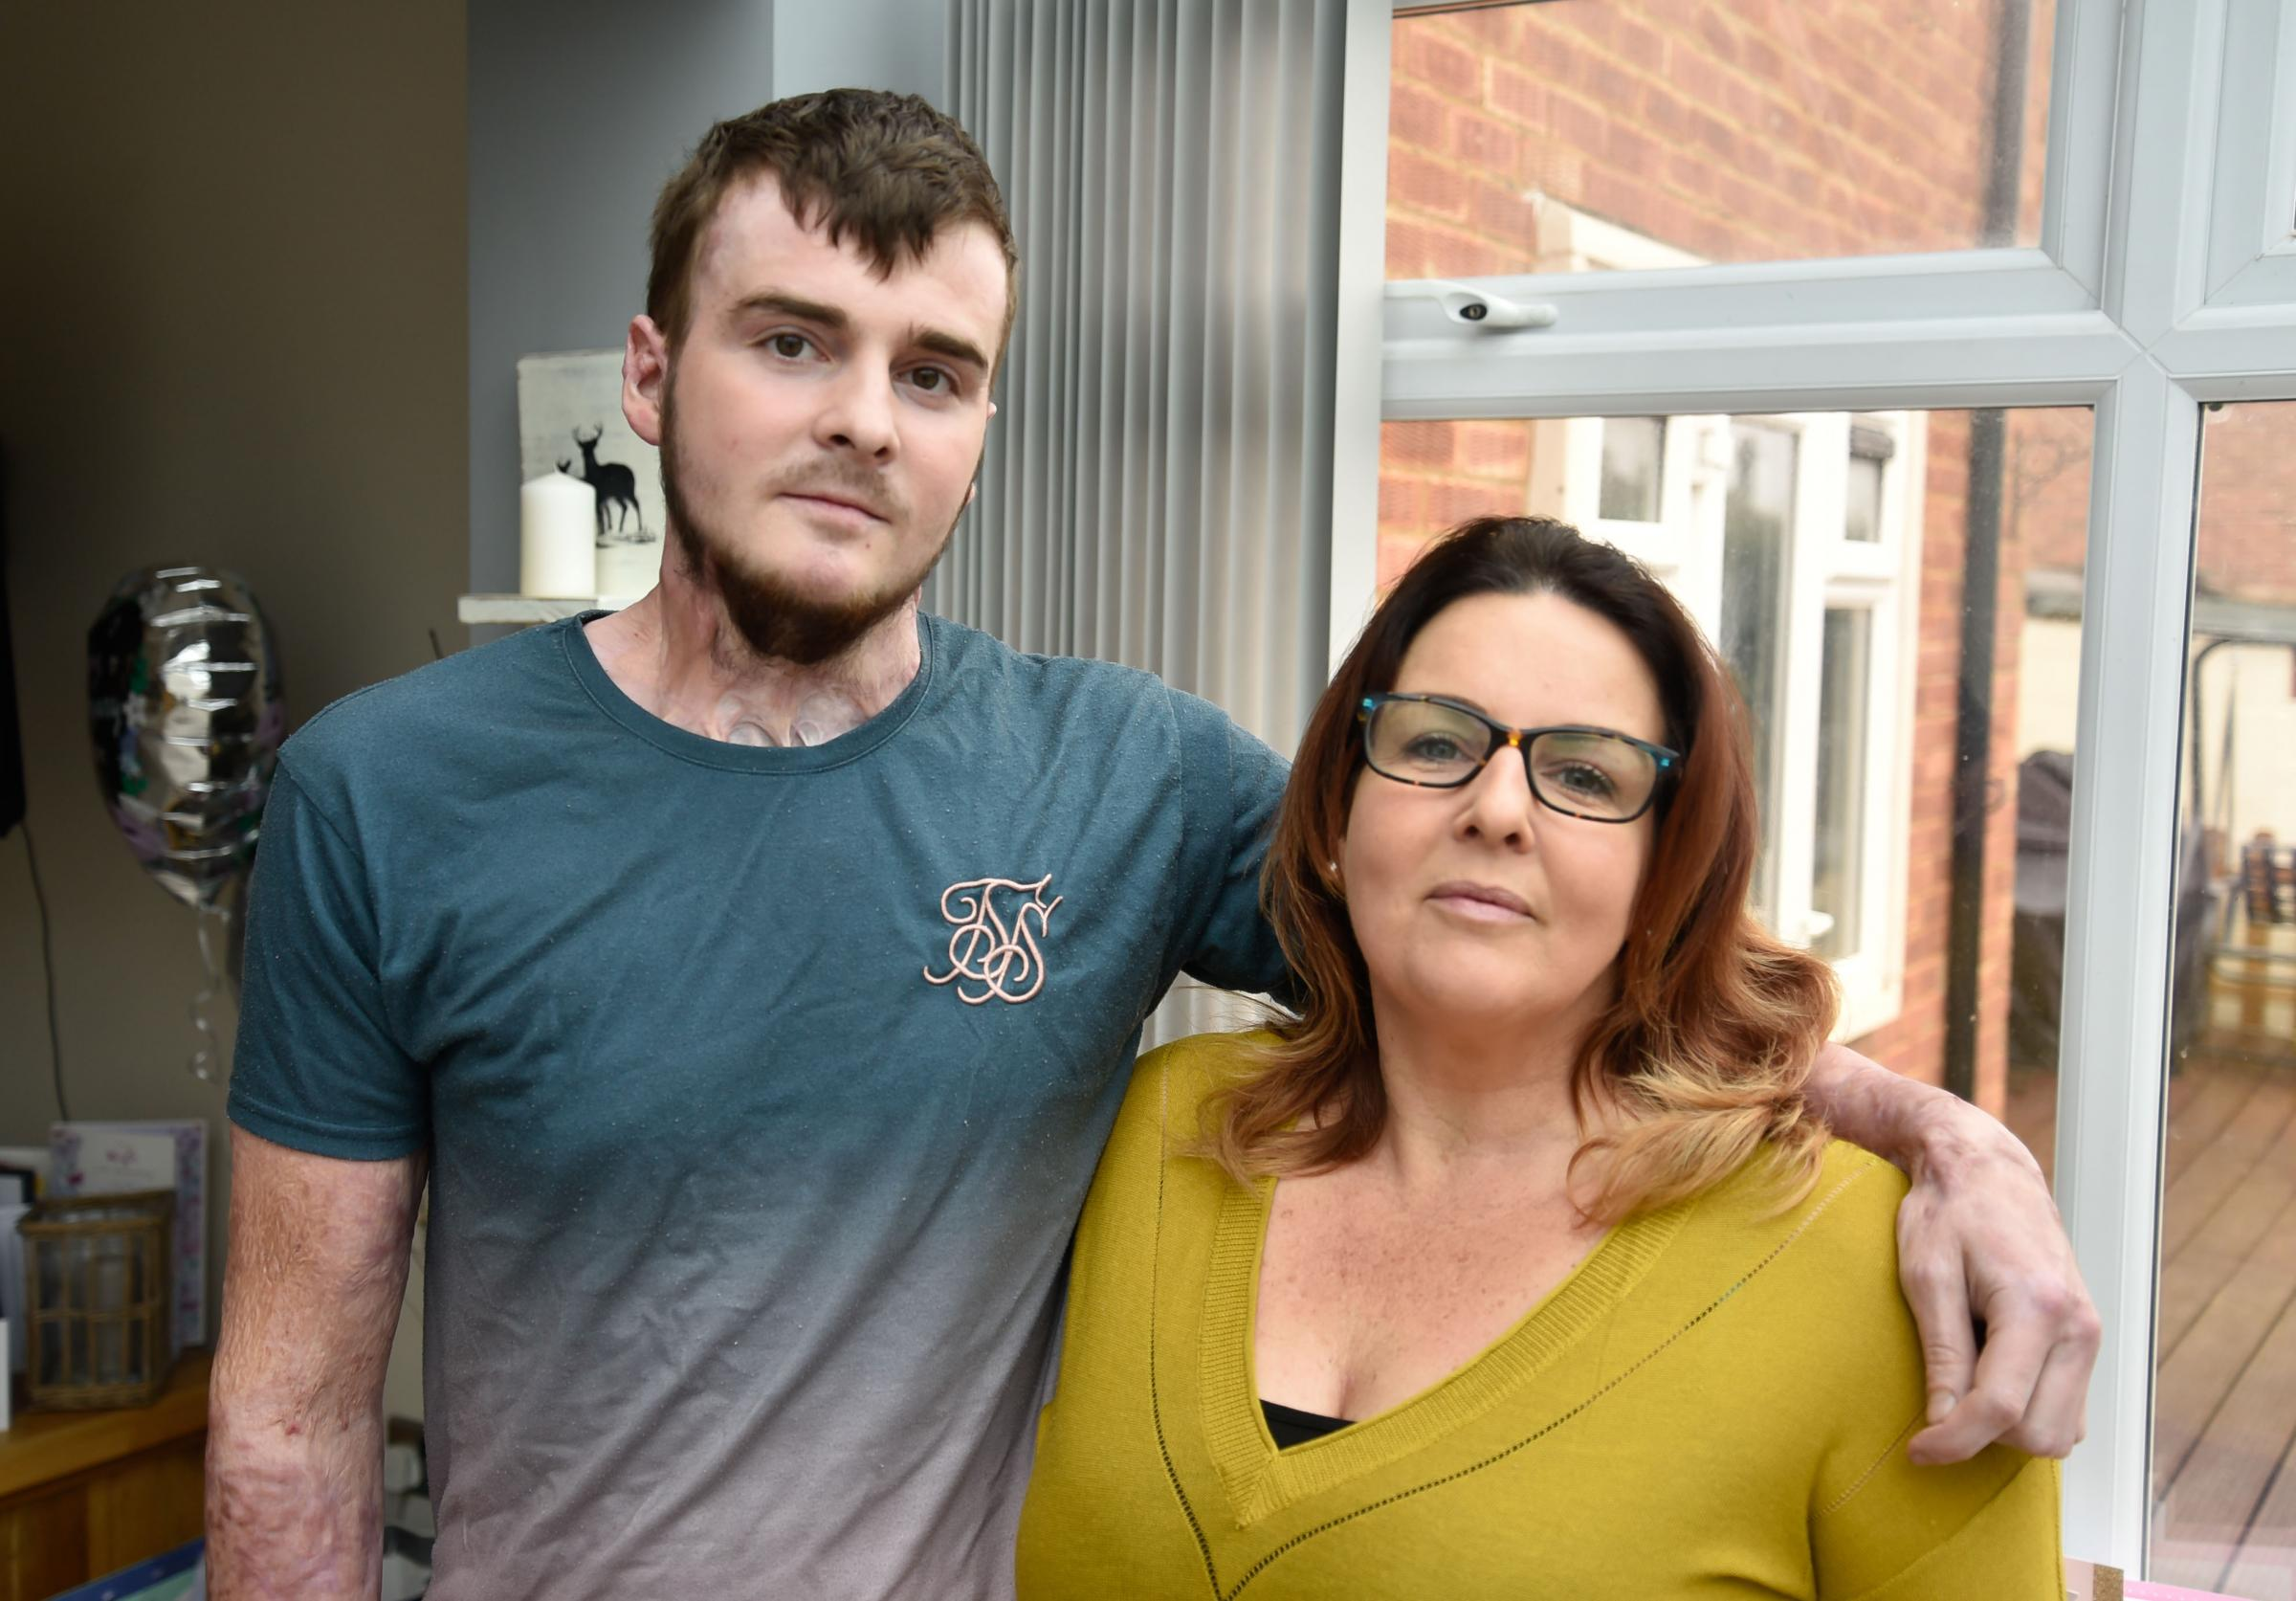 Chippenham gas explosion survivor Kyle Roe at home with mum Tracy Roe		                  	Photo by www.gphillipsphotography.com  GP1459